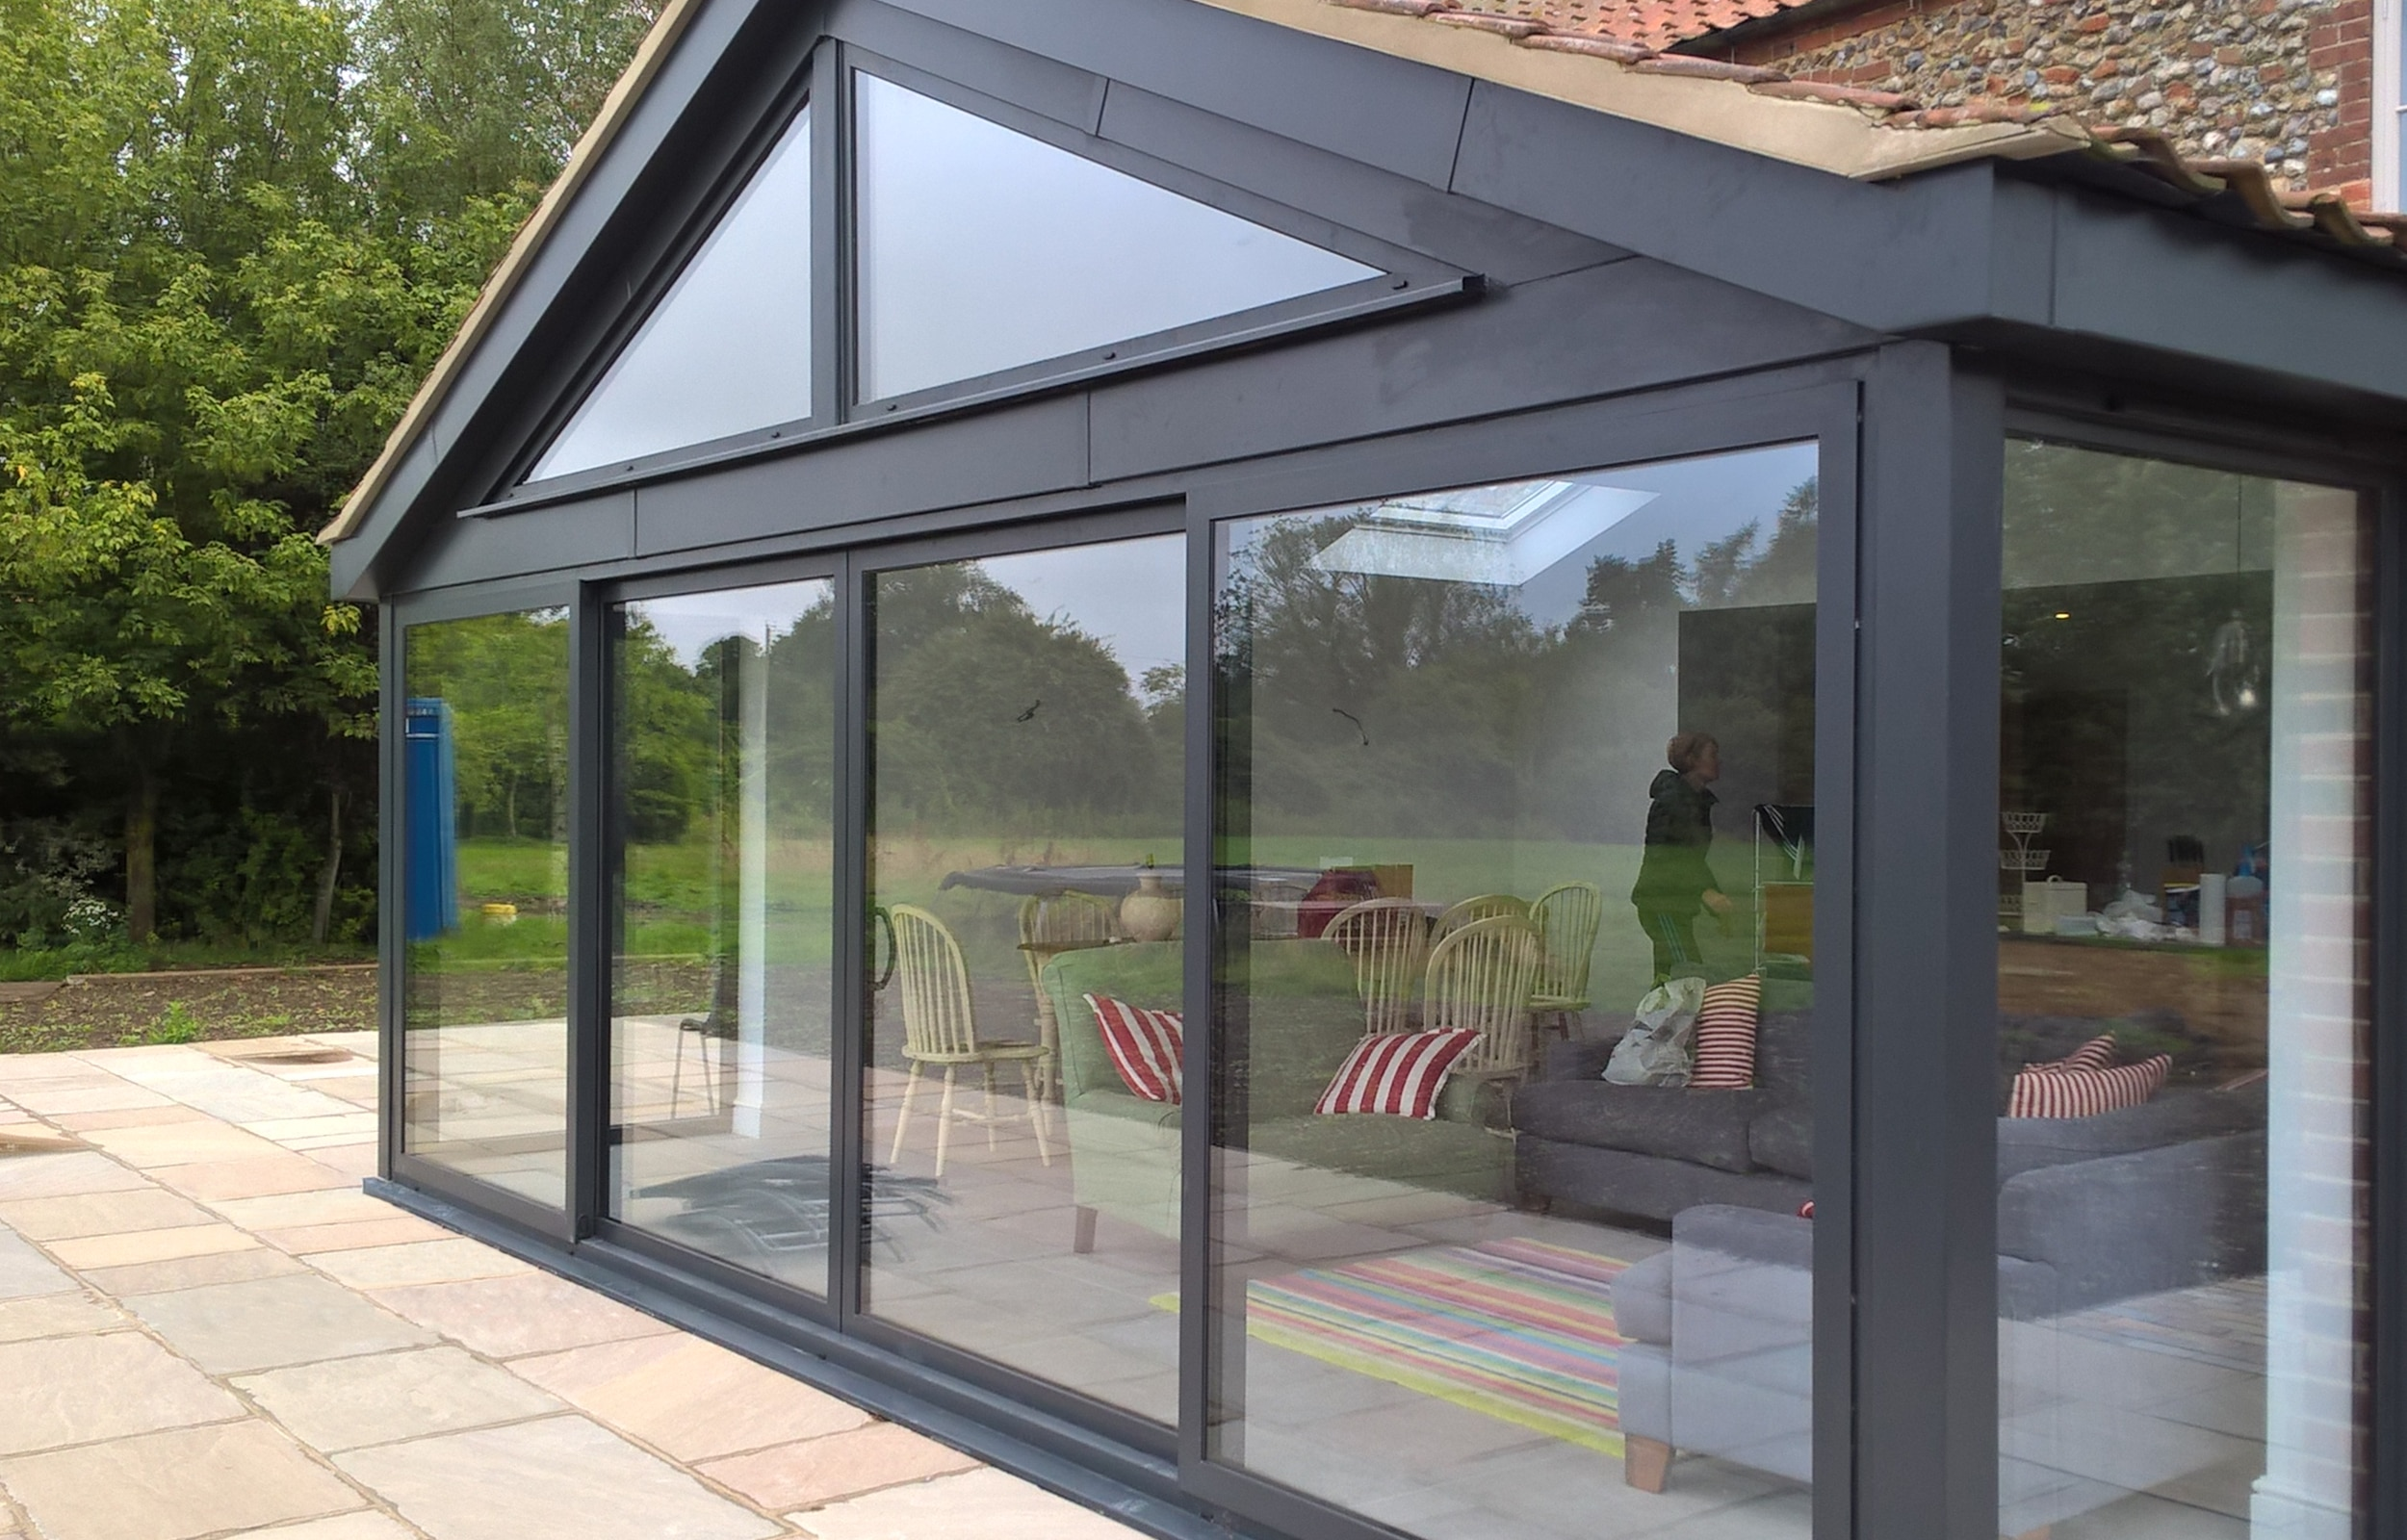 Patio Doors - Patio Sliding Doors in 4 panels with angled windows above